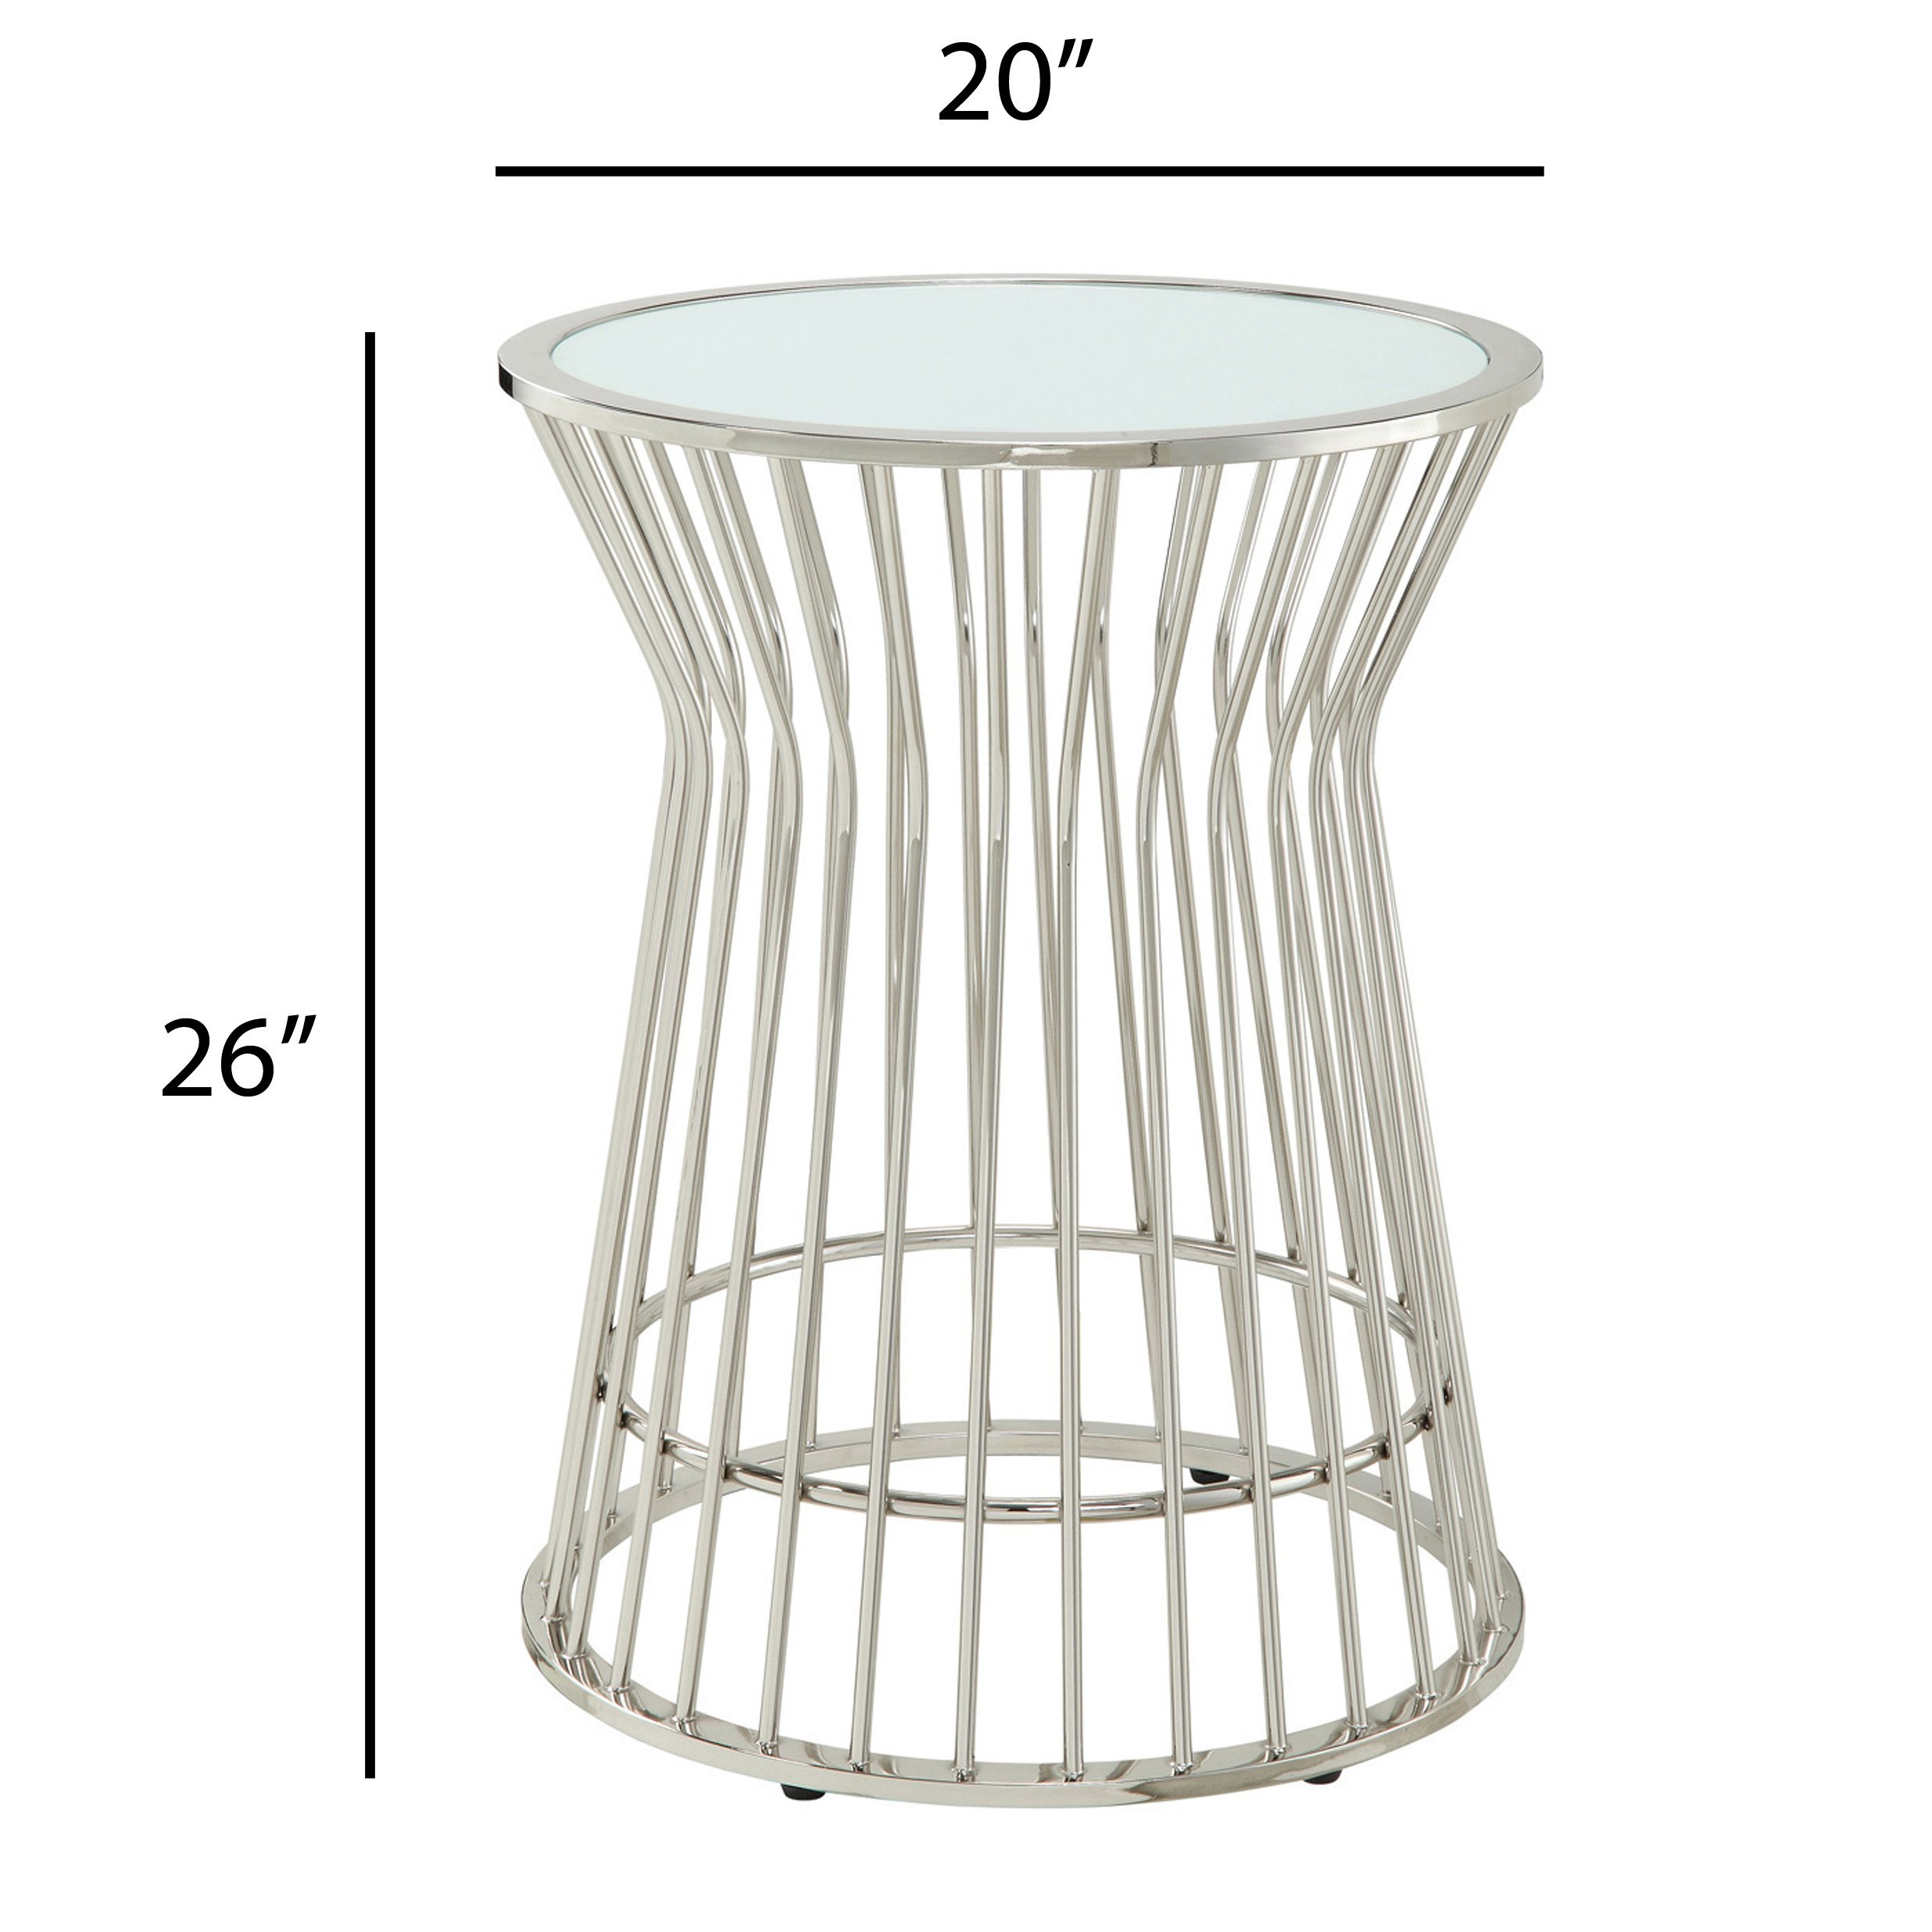 cyril contemporary glam metal frosted glass drum accent table inspire bold free shipping today heaters kohls lamps diy outdoor furniture plans clearance dining sets white and gold